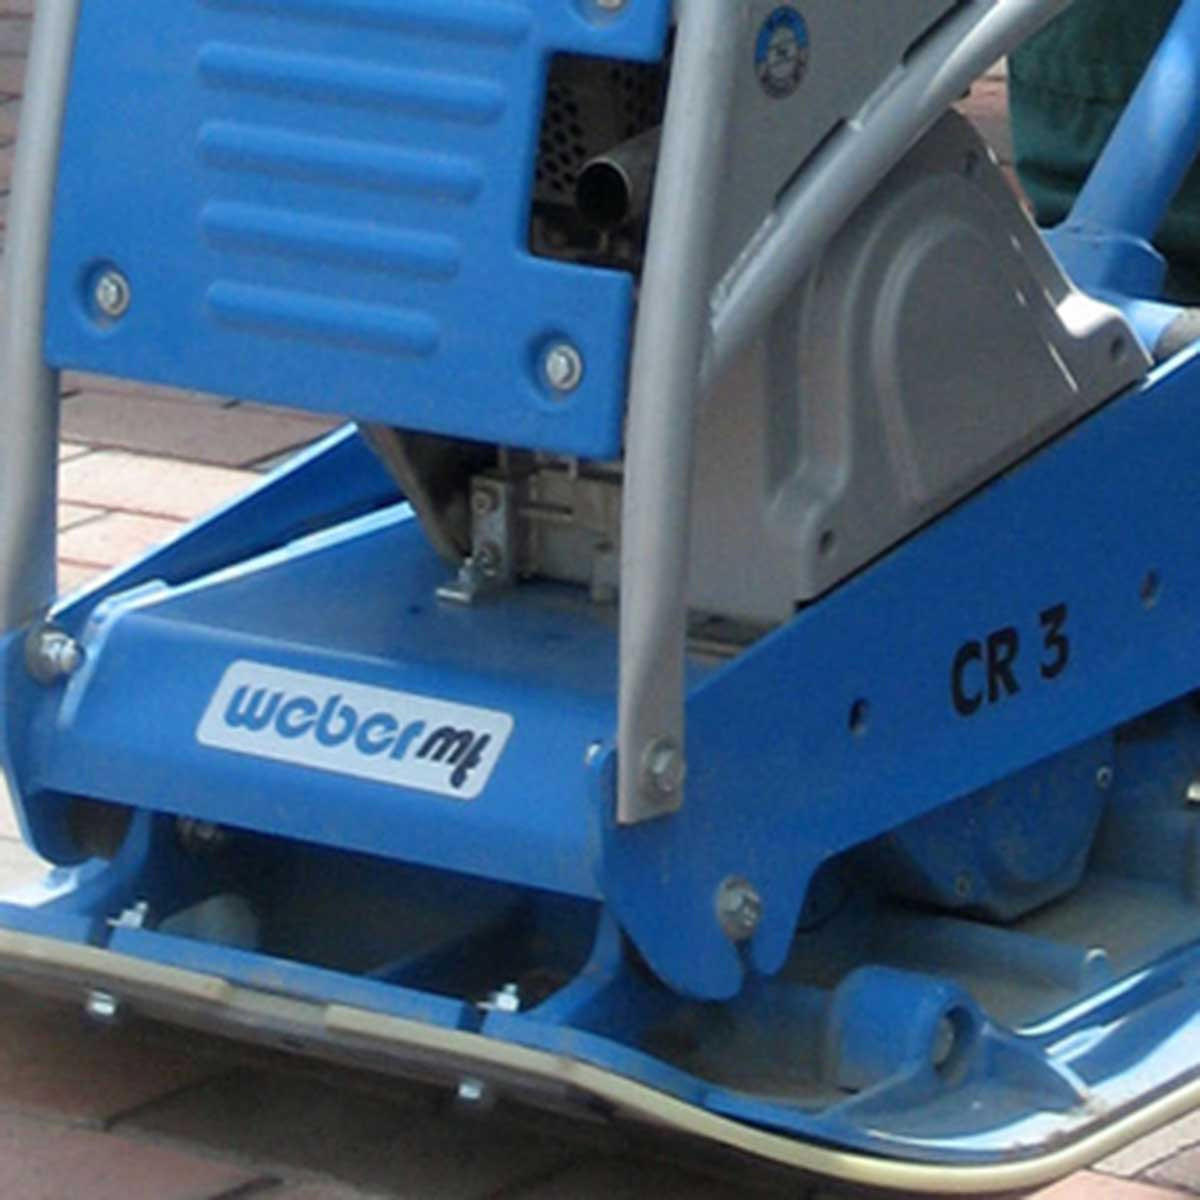 Weber mt CR Poly Pads Paver Protect